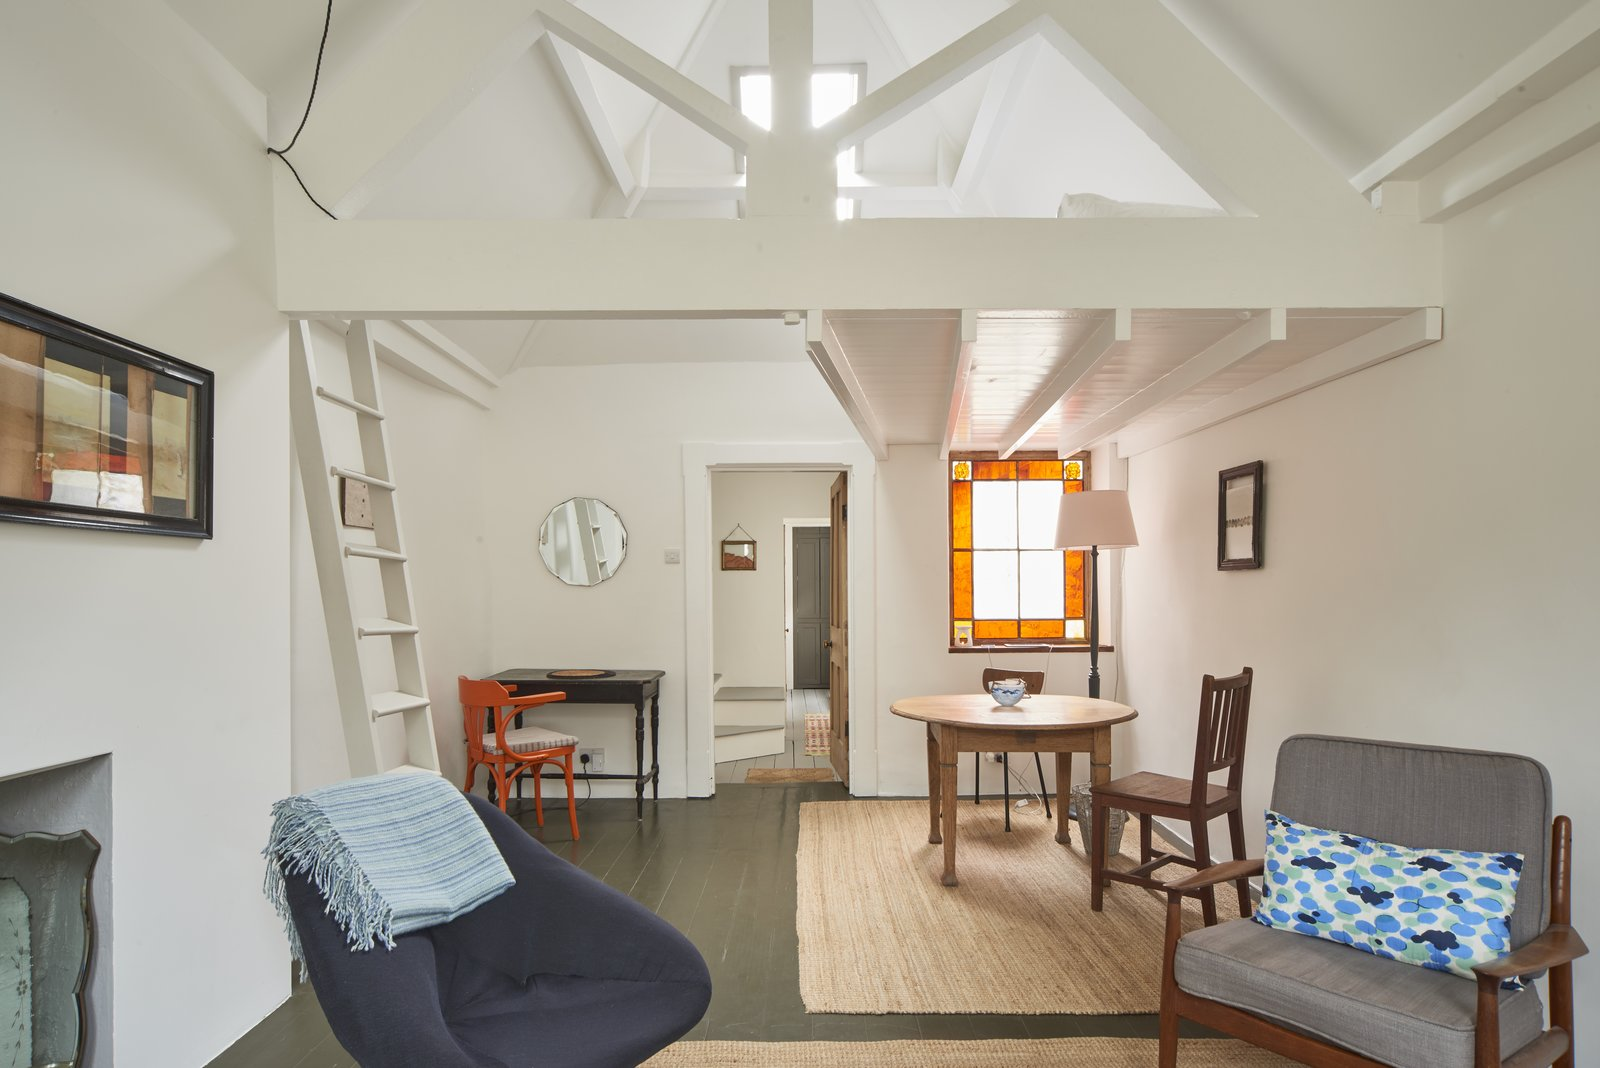 The Quaint Living Space Features A Stained Glass Window, Lofted Sleeping  Platform, Vaulted